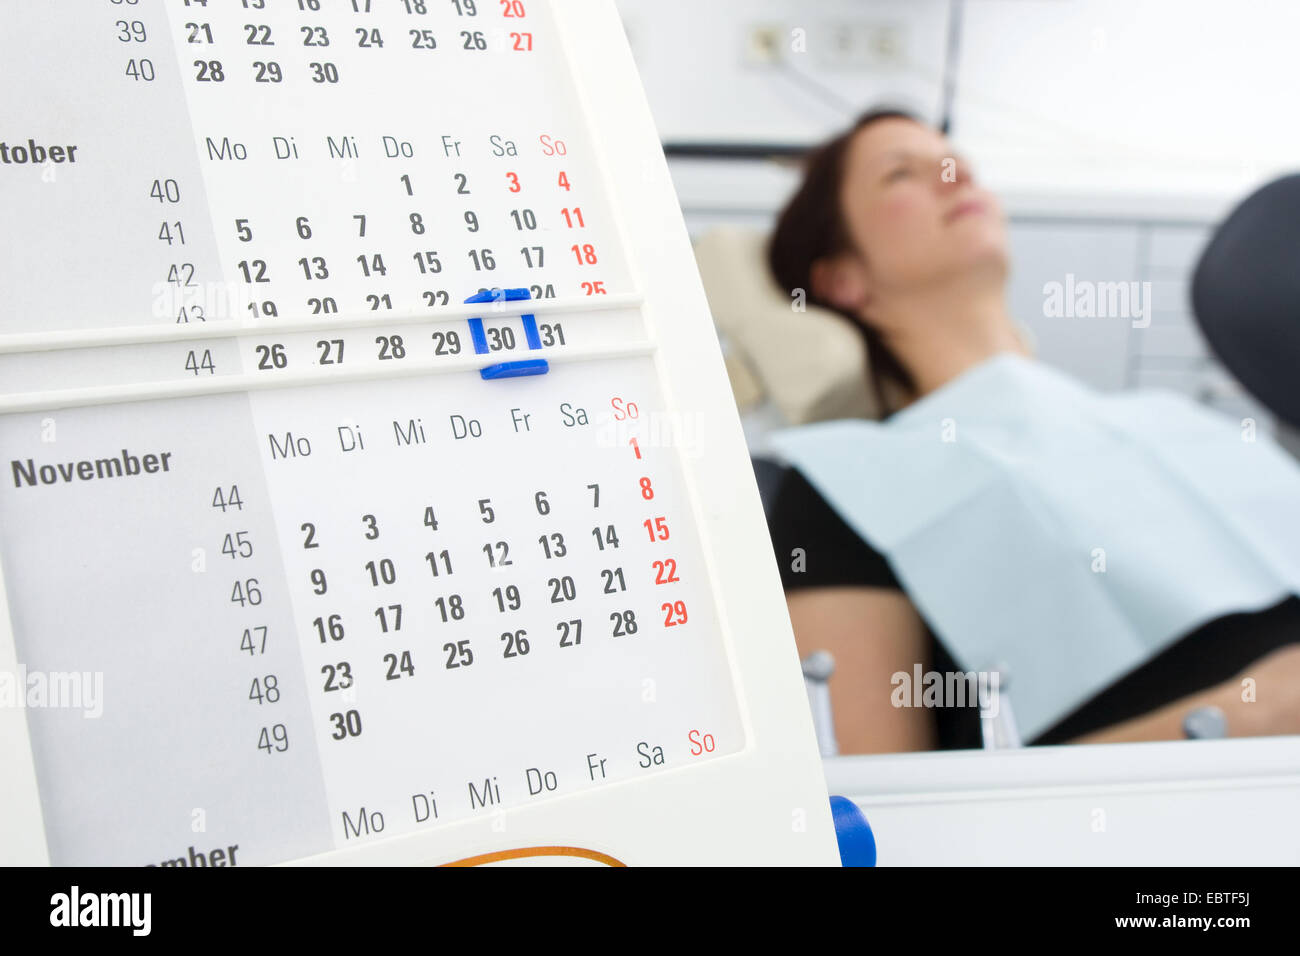 patient waiting for dental treatment - Stock Image